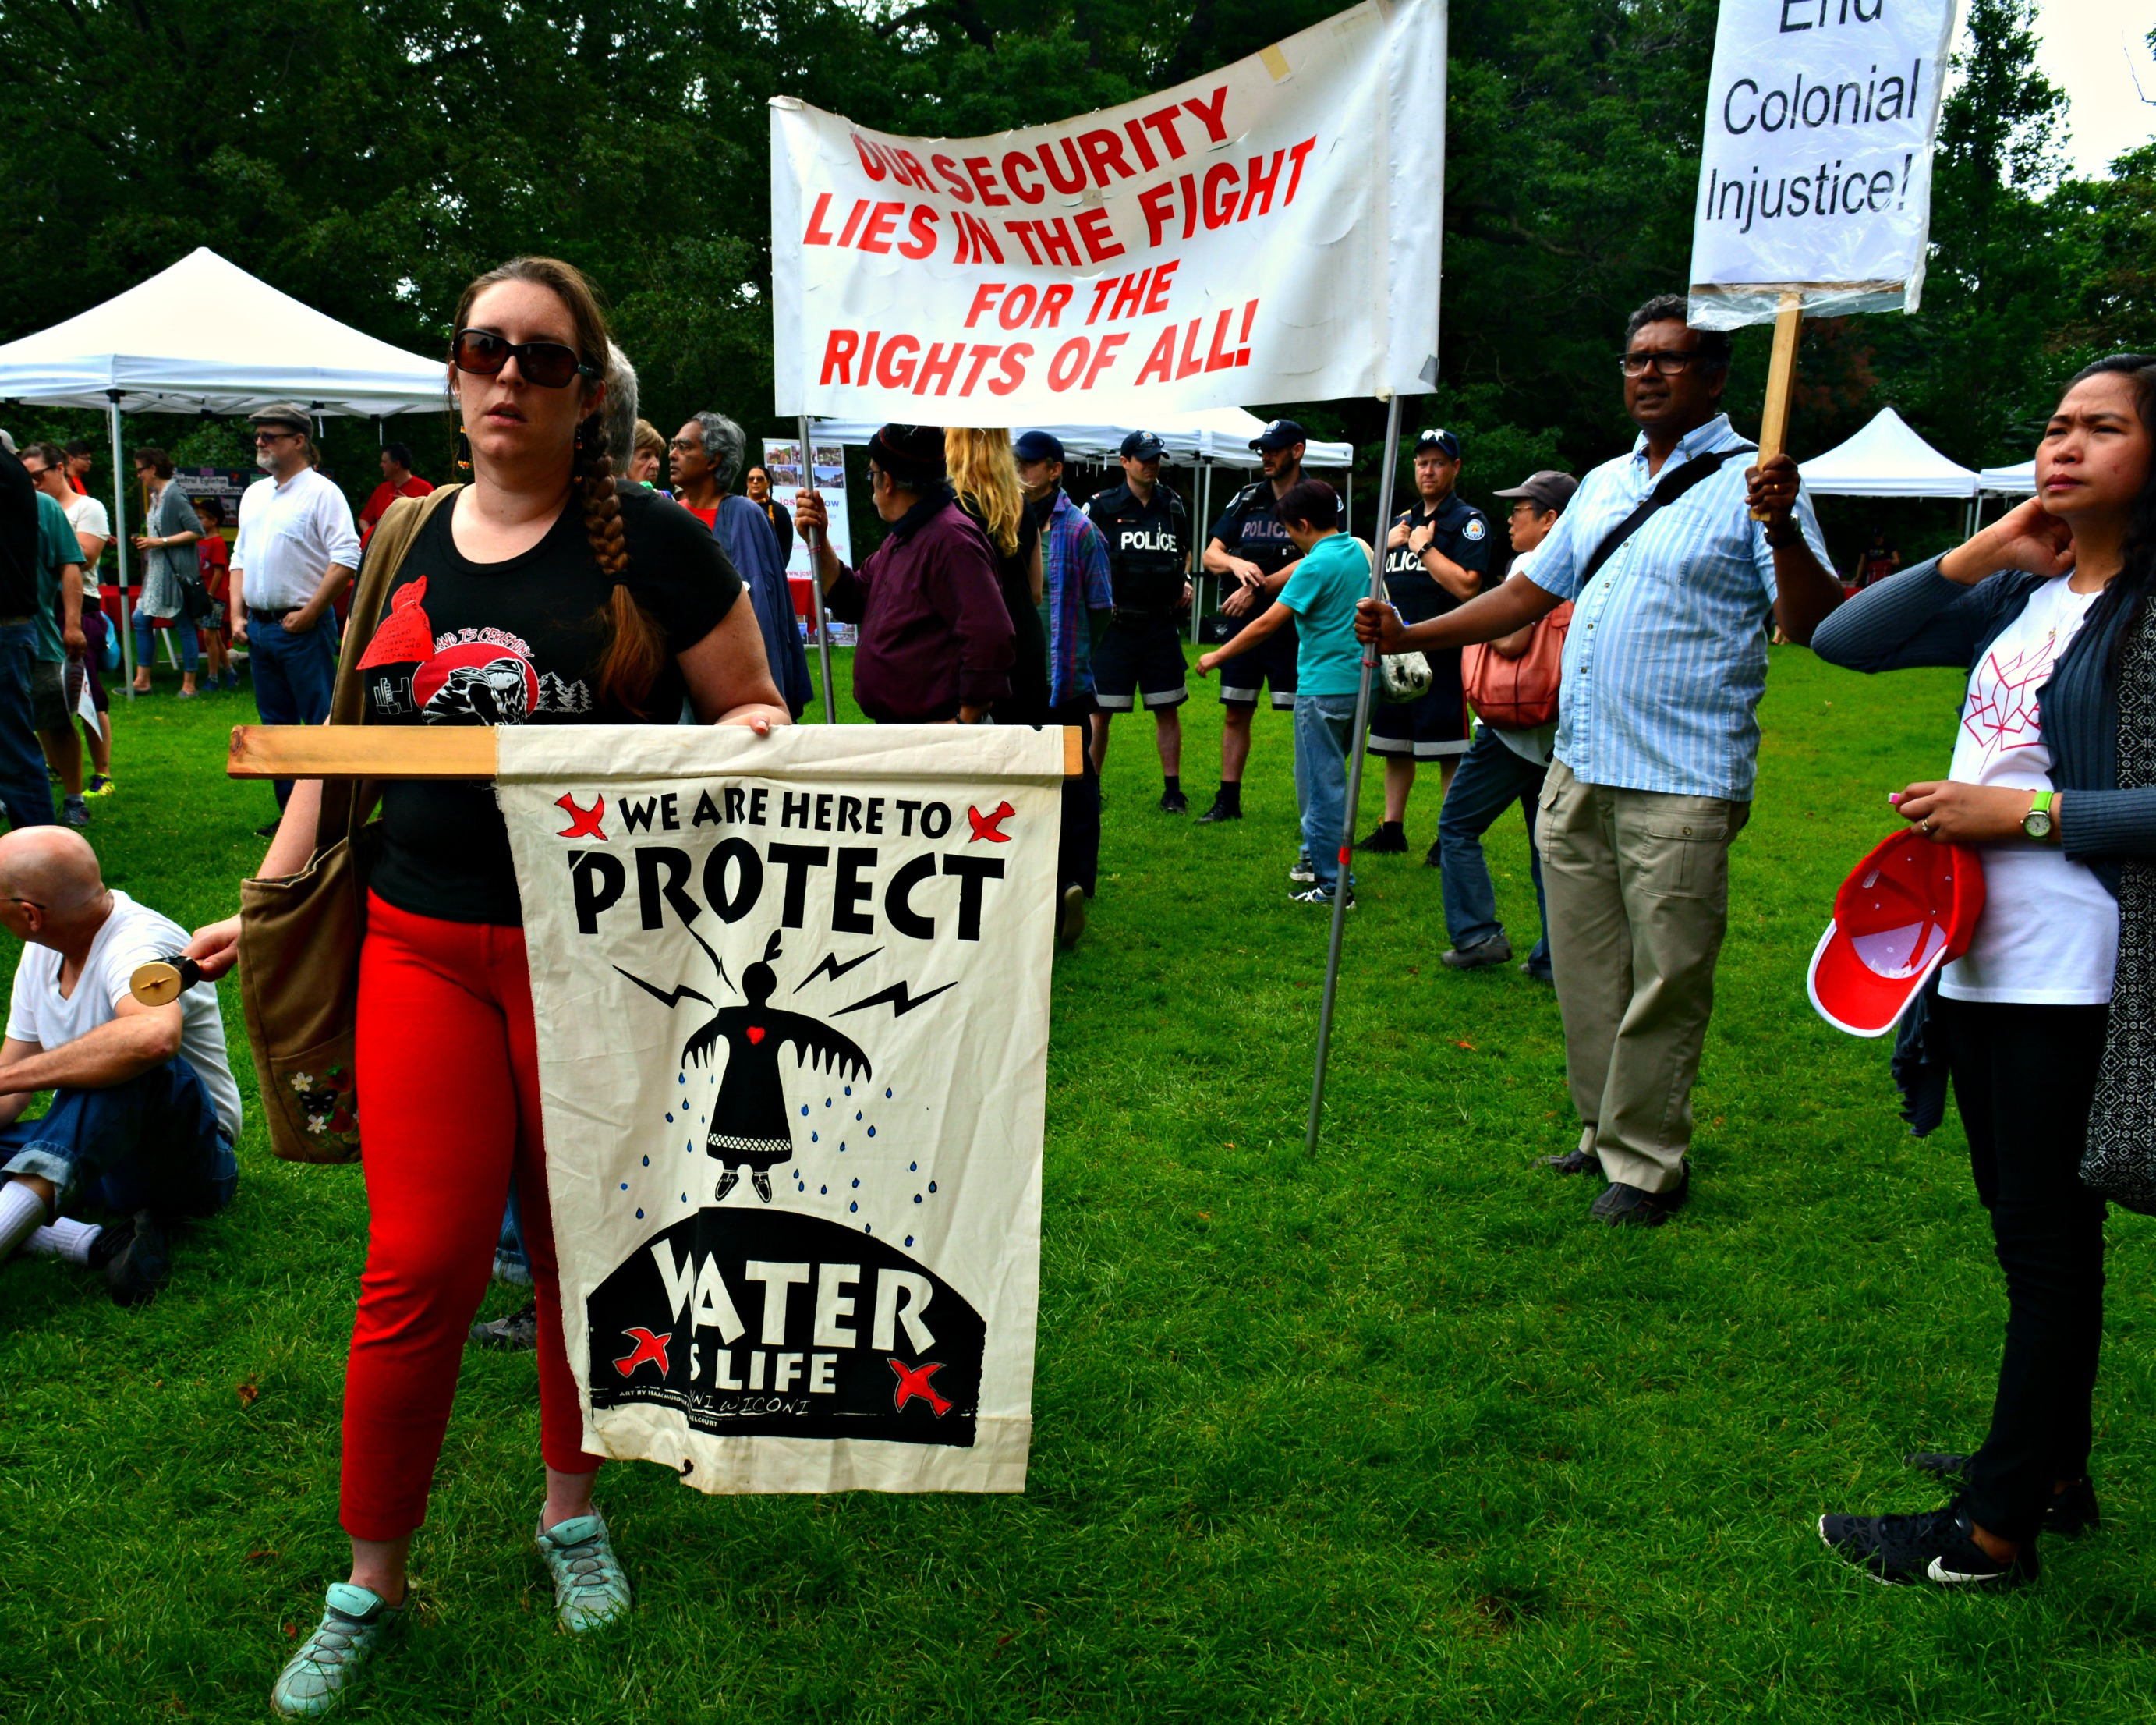 Protecting the water was also an important message of the protest.